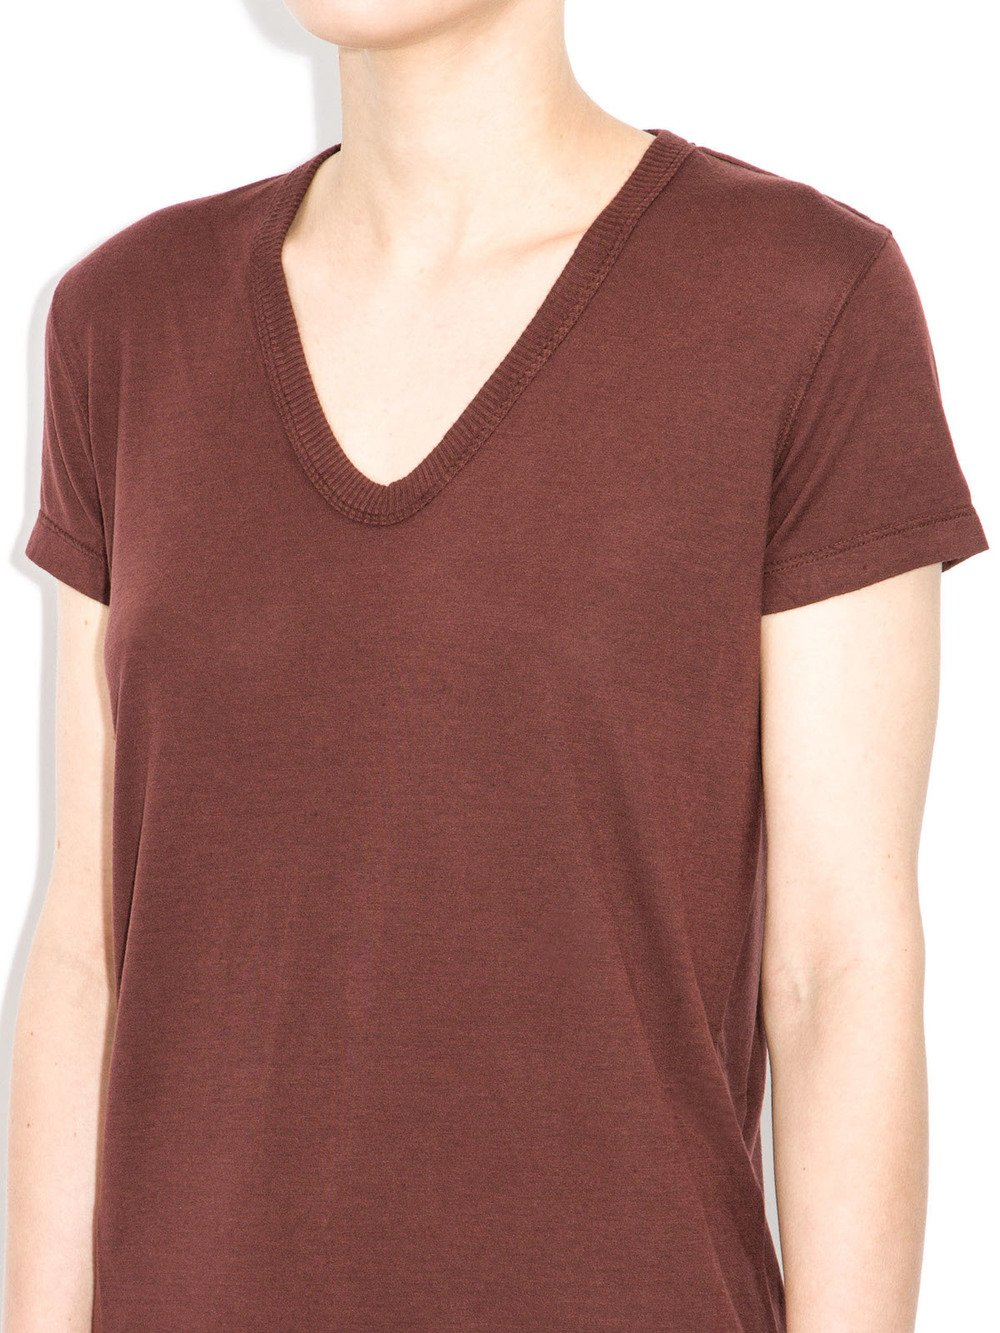 rick owens moody blood red top